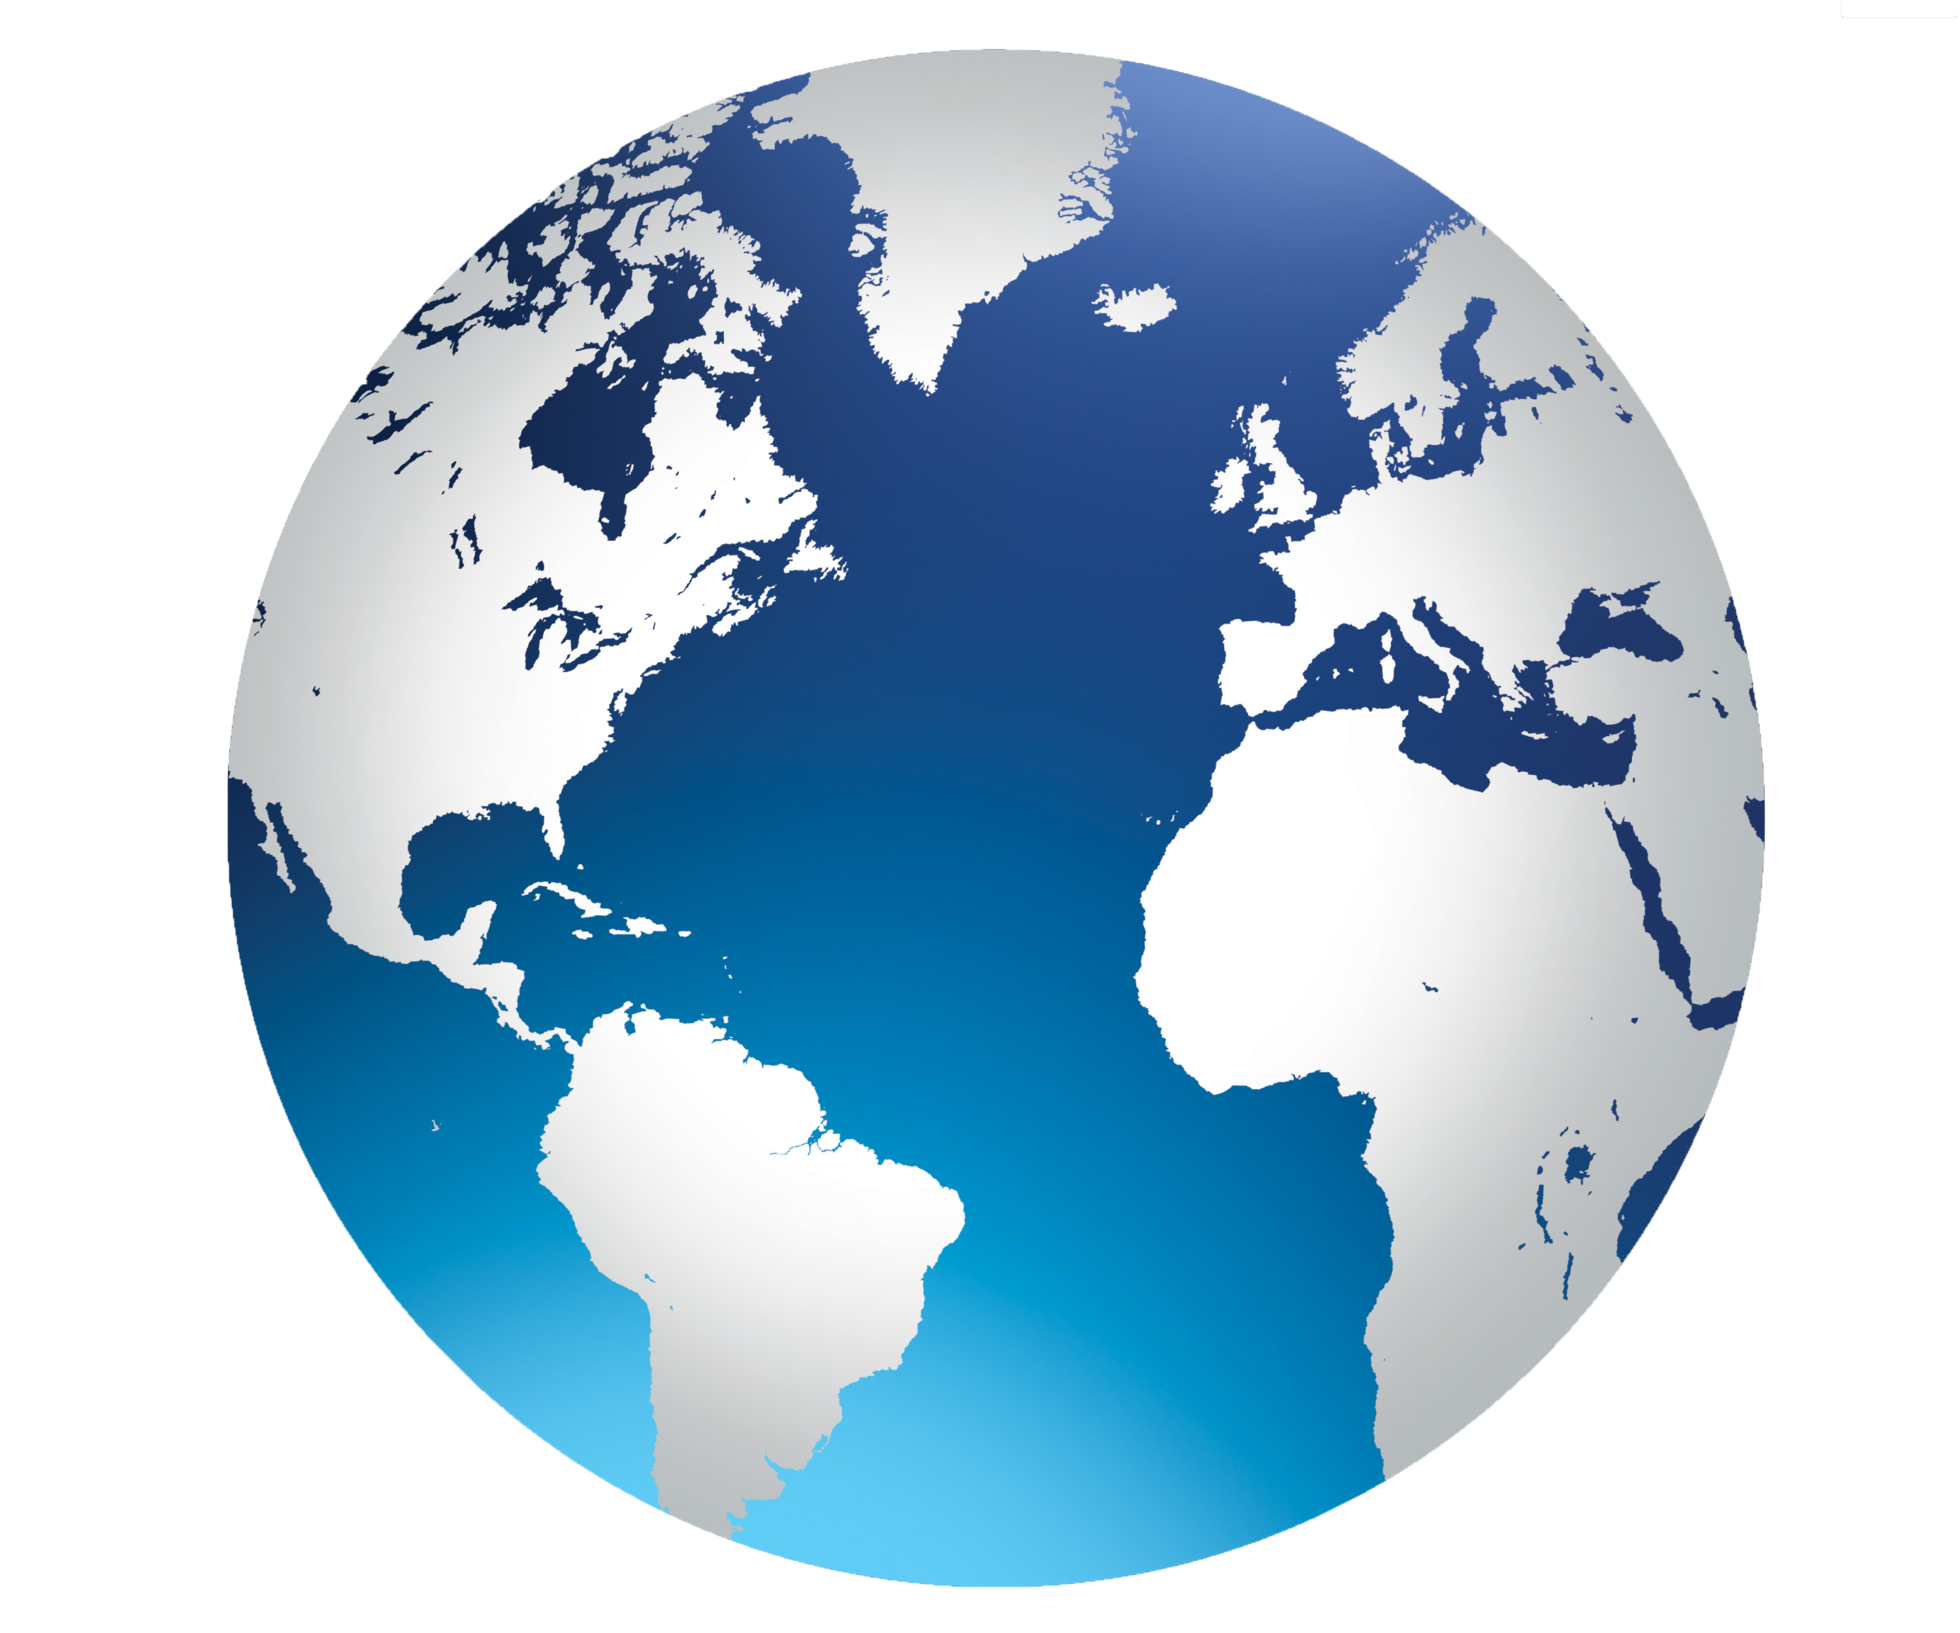 Earth Globe Image Free Clipart HQ PNG Image